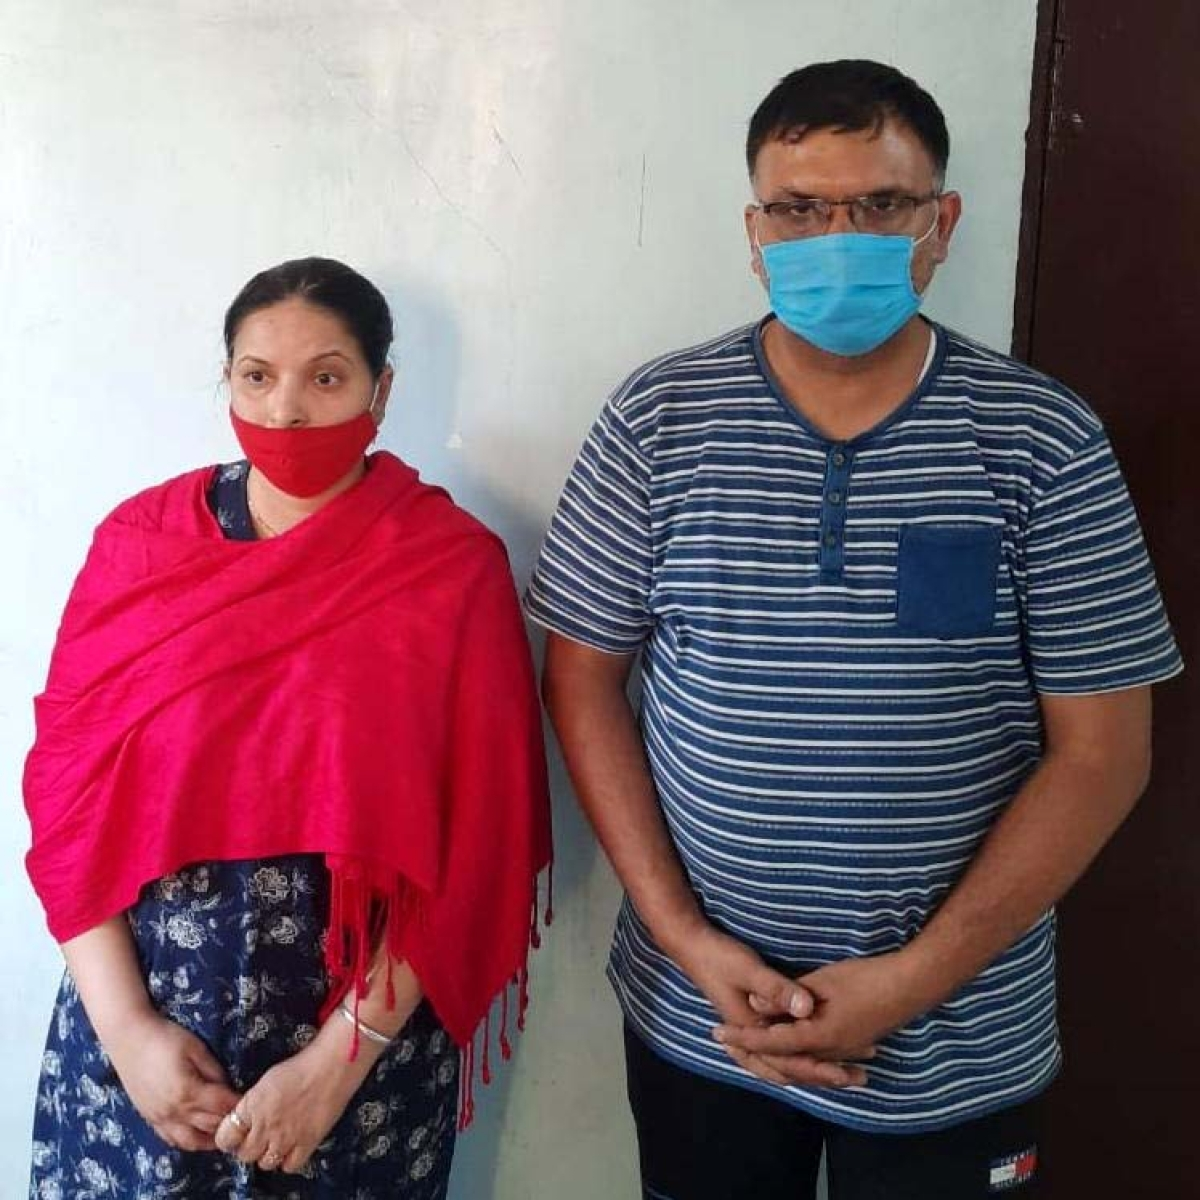 Bhopal: Jalandhar-based fraudster couple falls in police net, brought to city